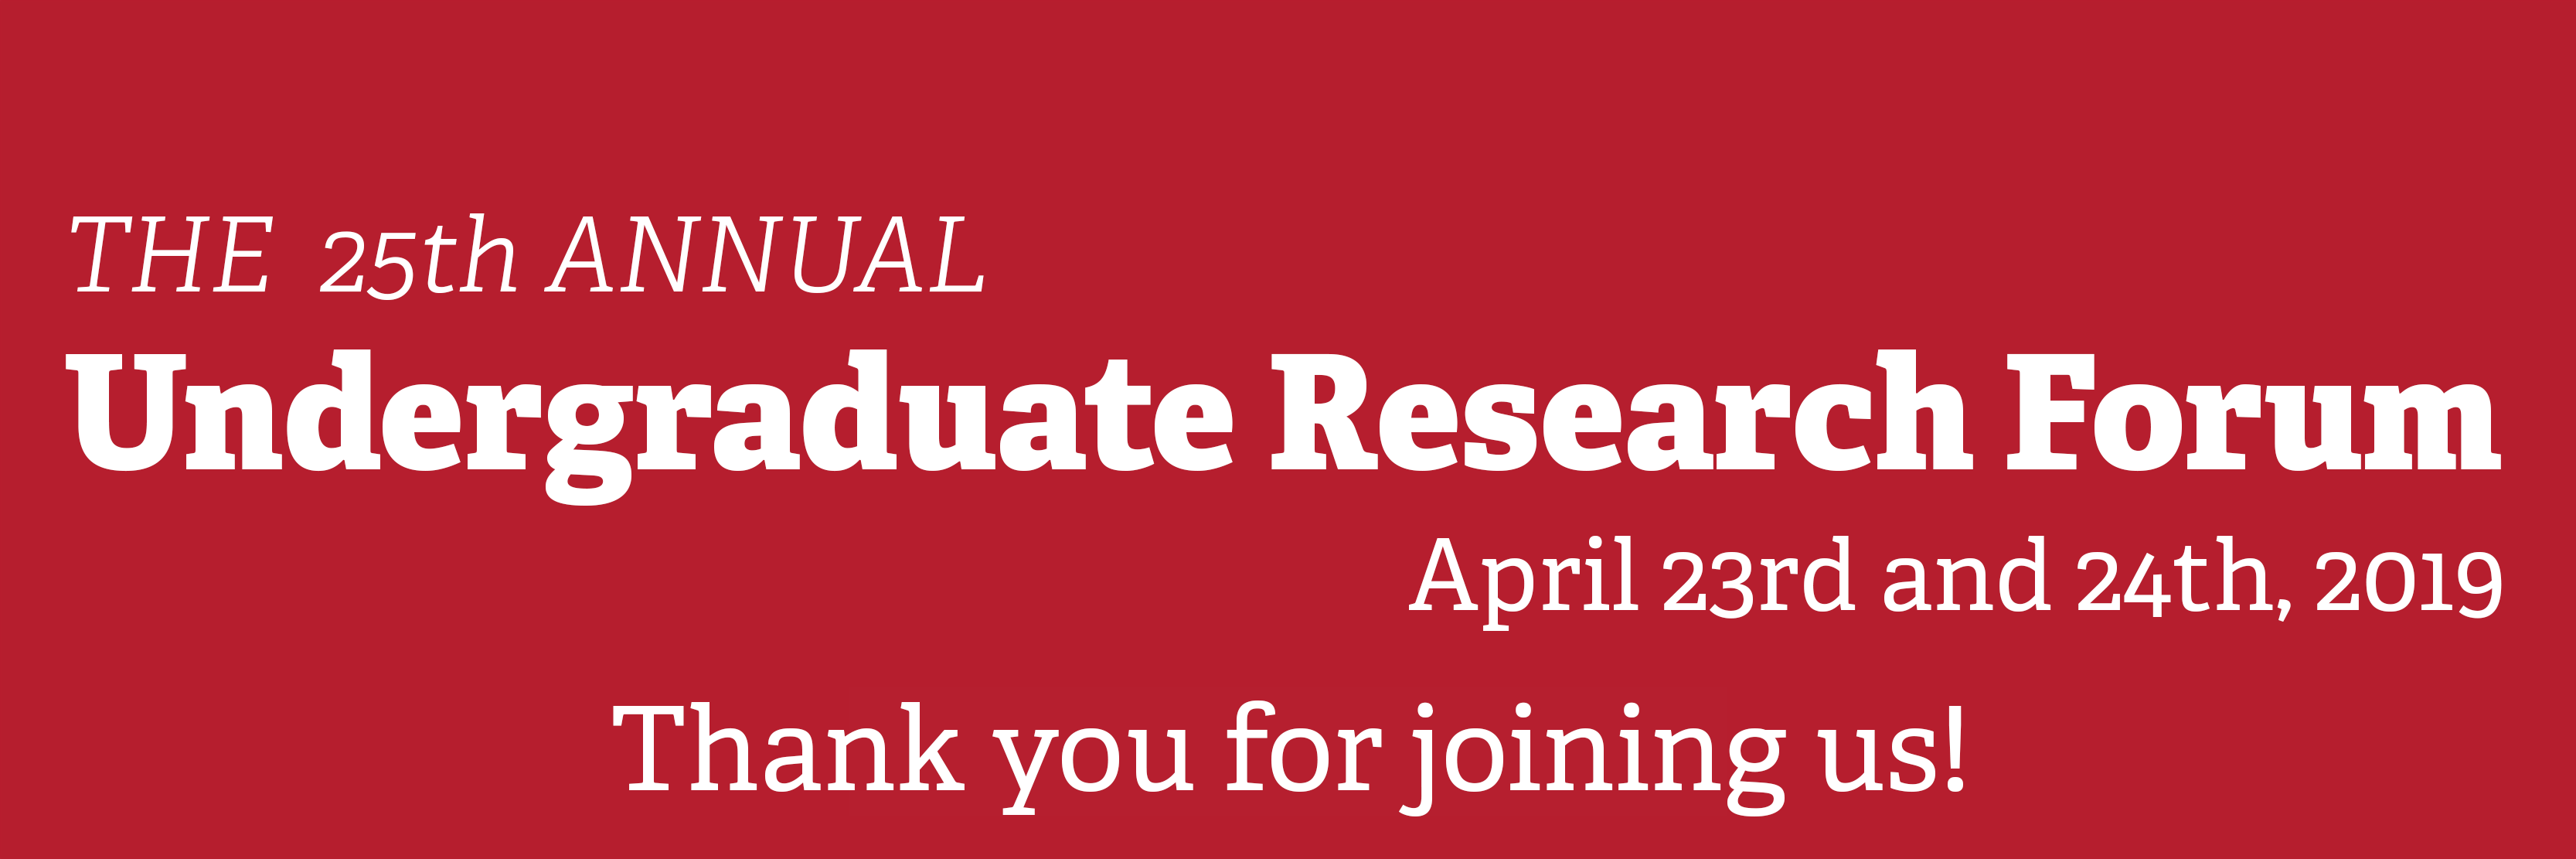 Save the date for the Undergraduate Research Forum now